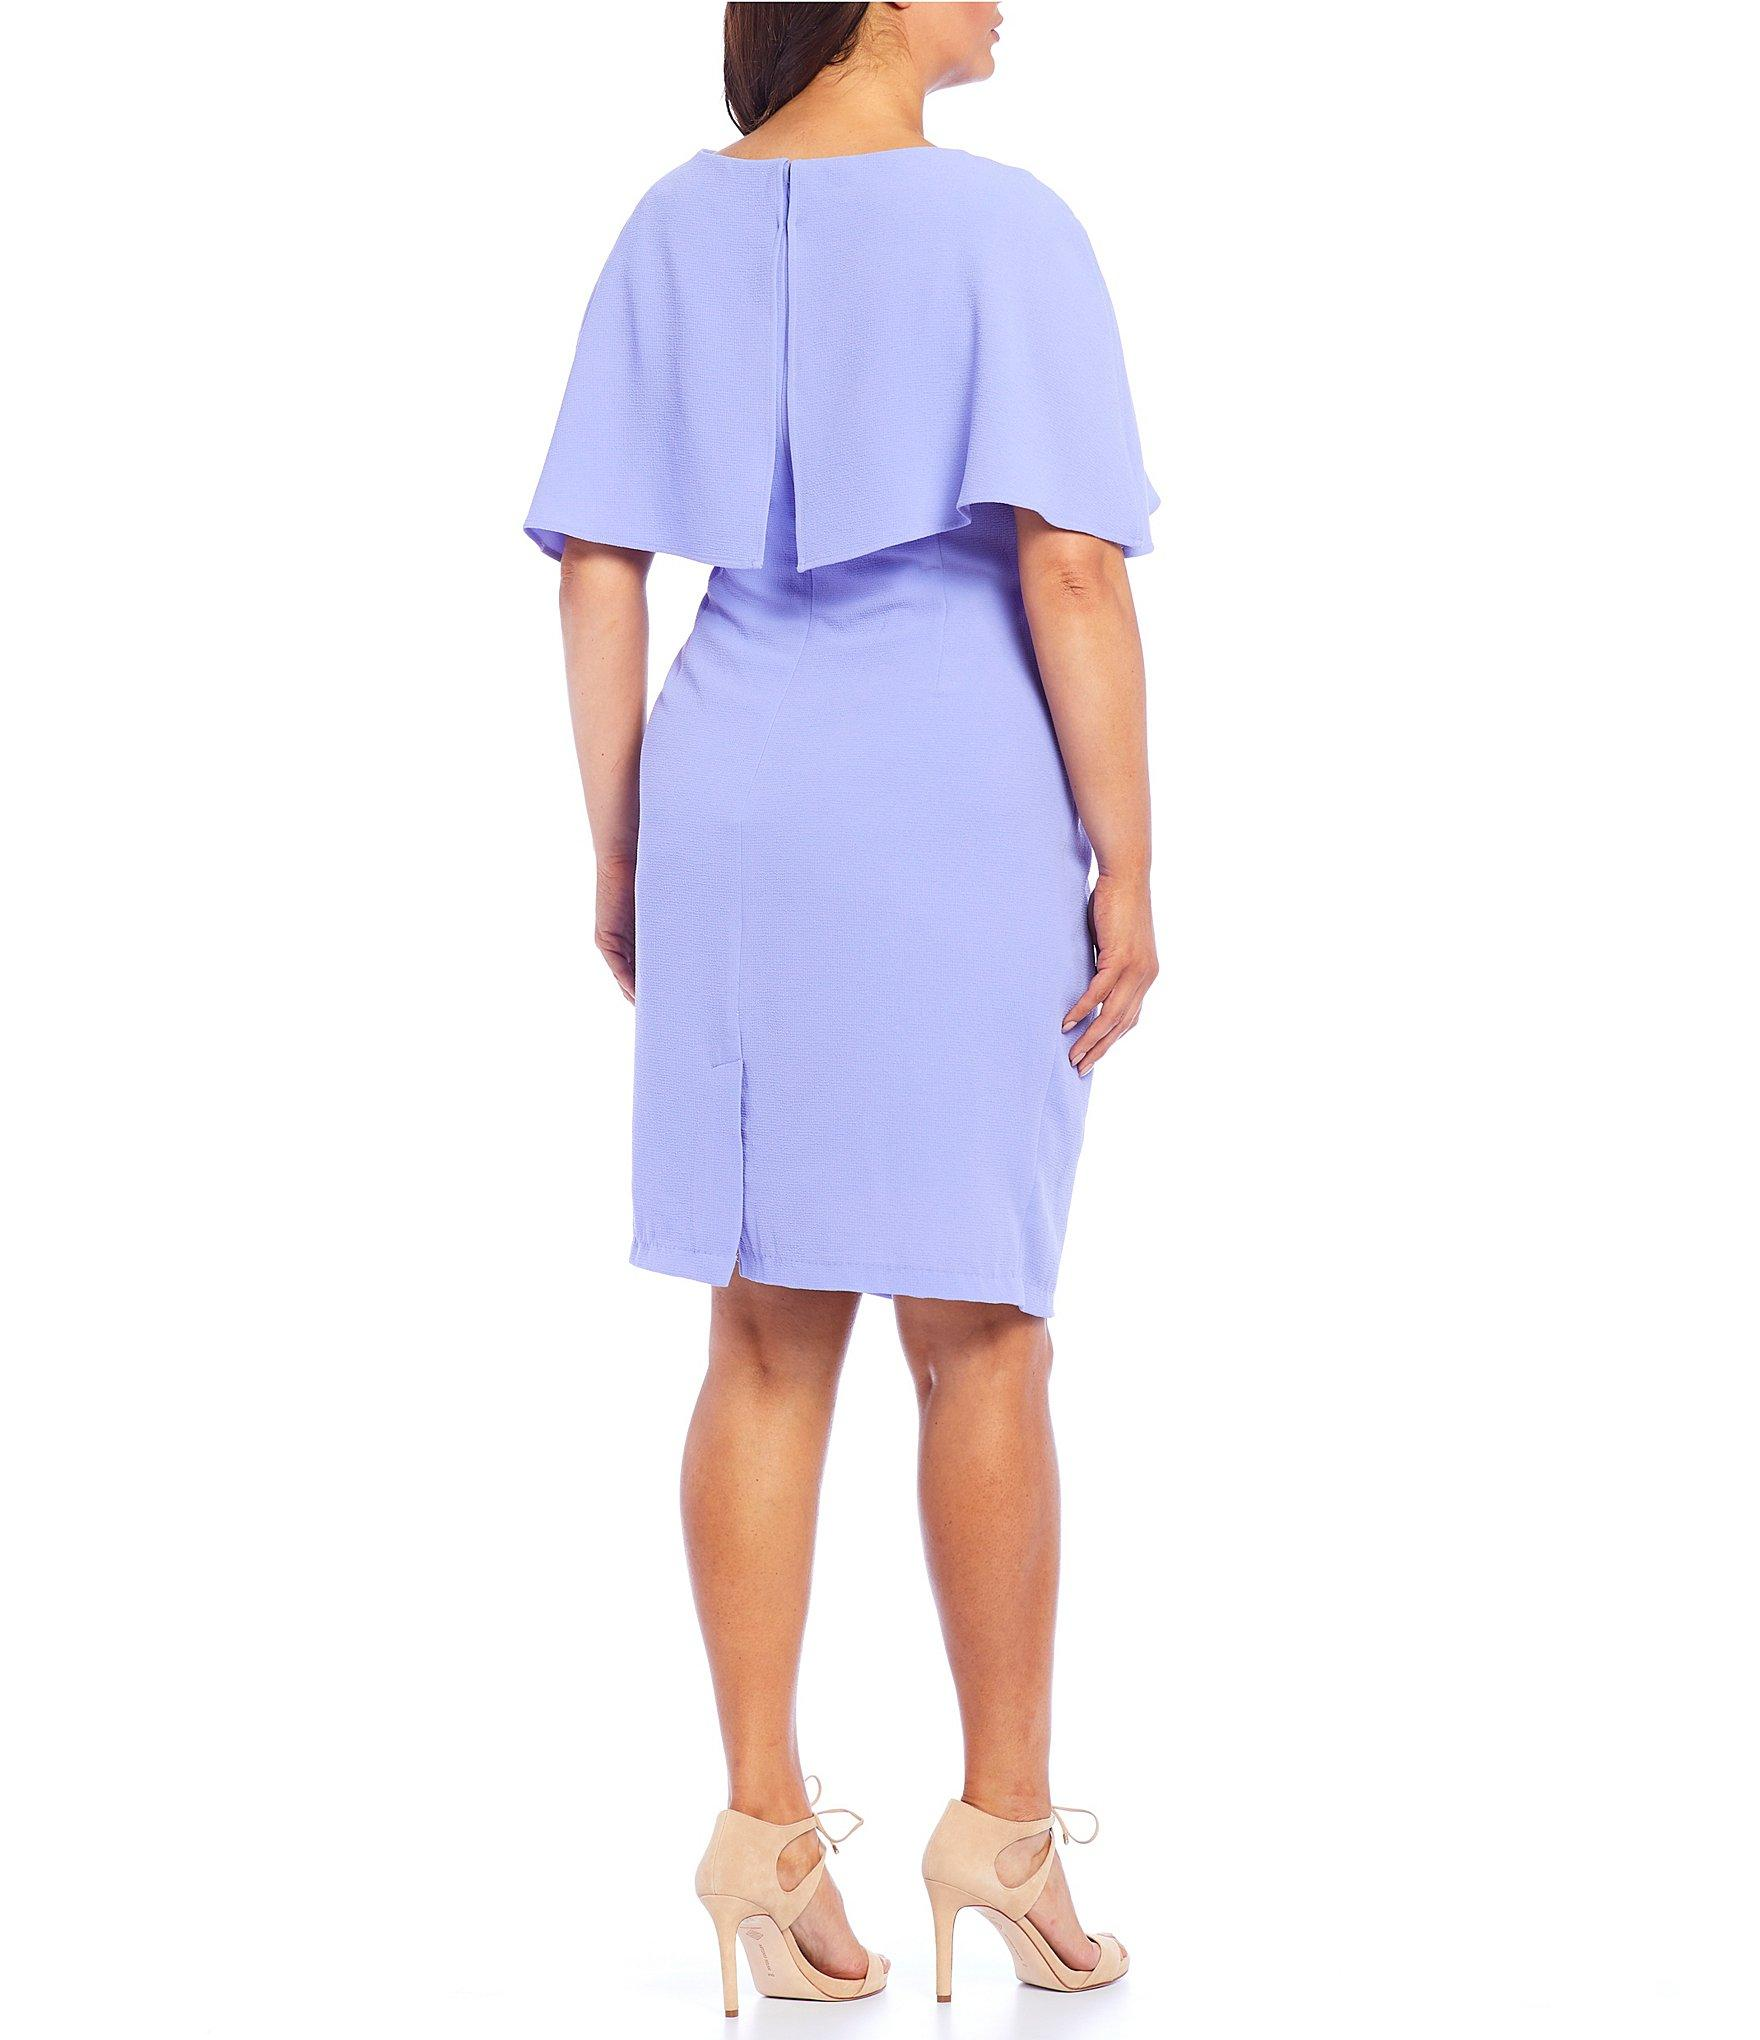 9df0c5ef620 Adrianna Papell - Blue Plus Size Boat Neck Cape Sheath Dress - Lyst. View  fullscreen